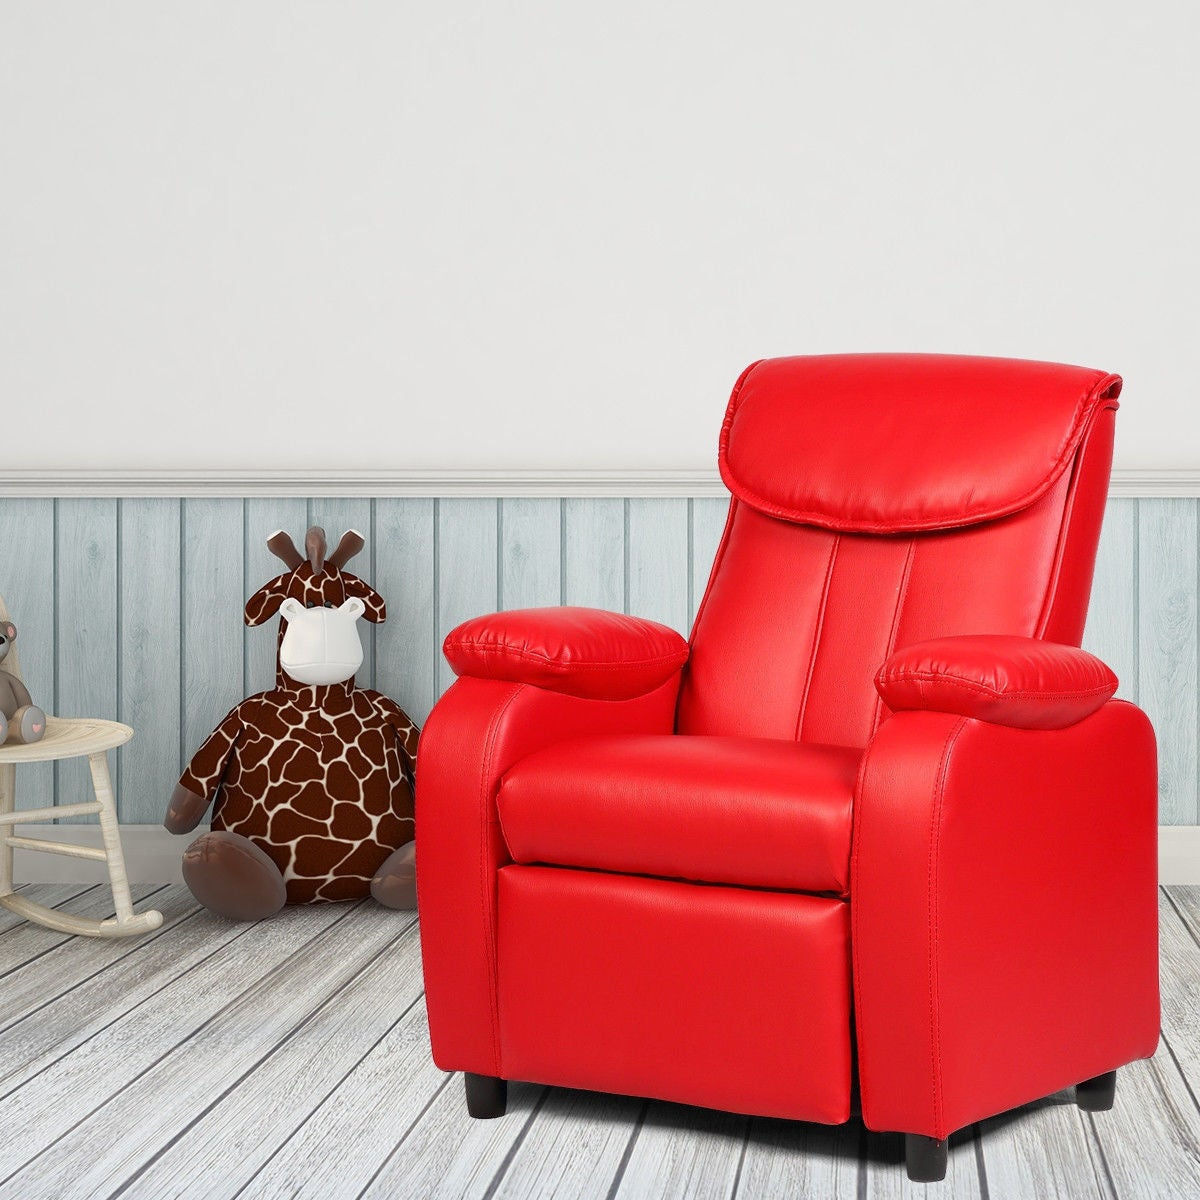 Costway Kid Recliner Sofa Armrest Chair Couch Children Living Room  Furniture Home Red